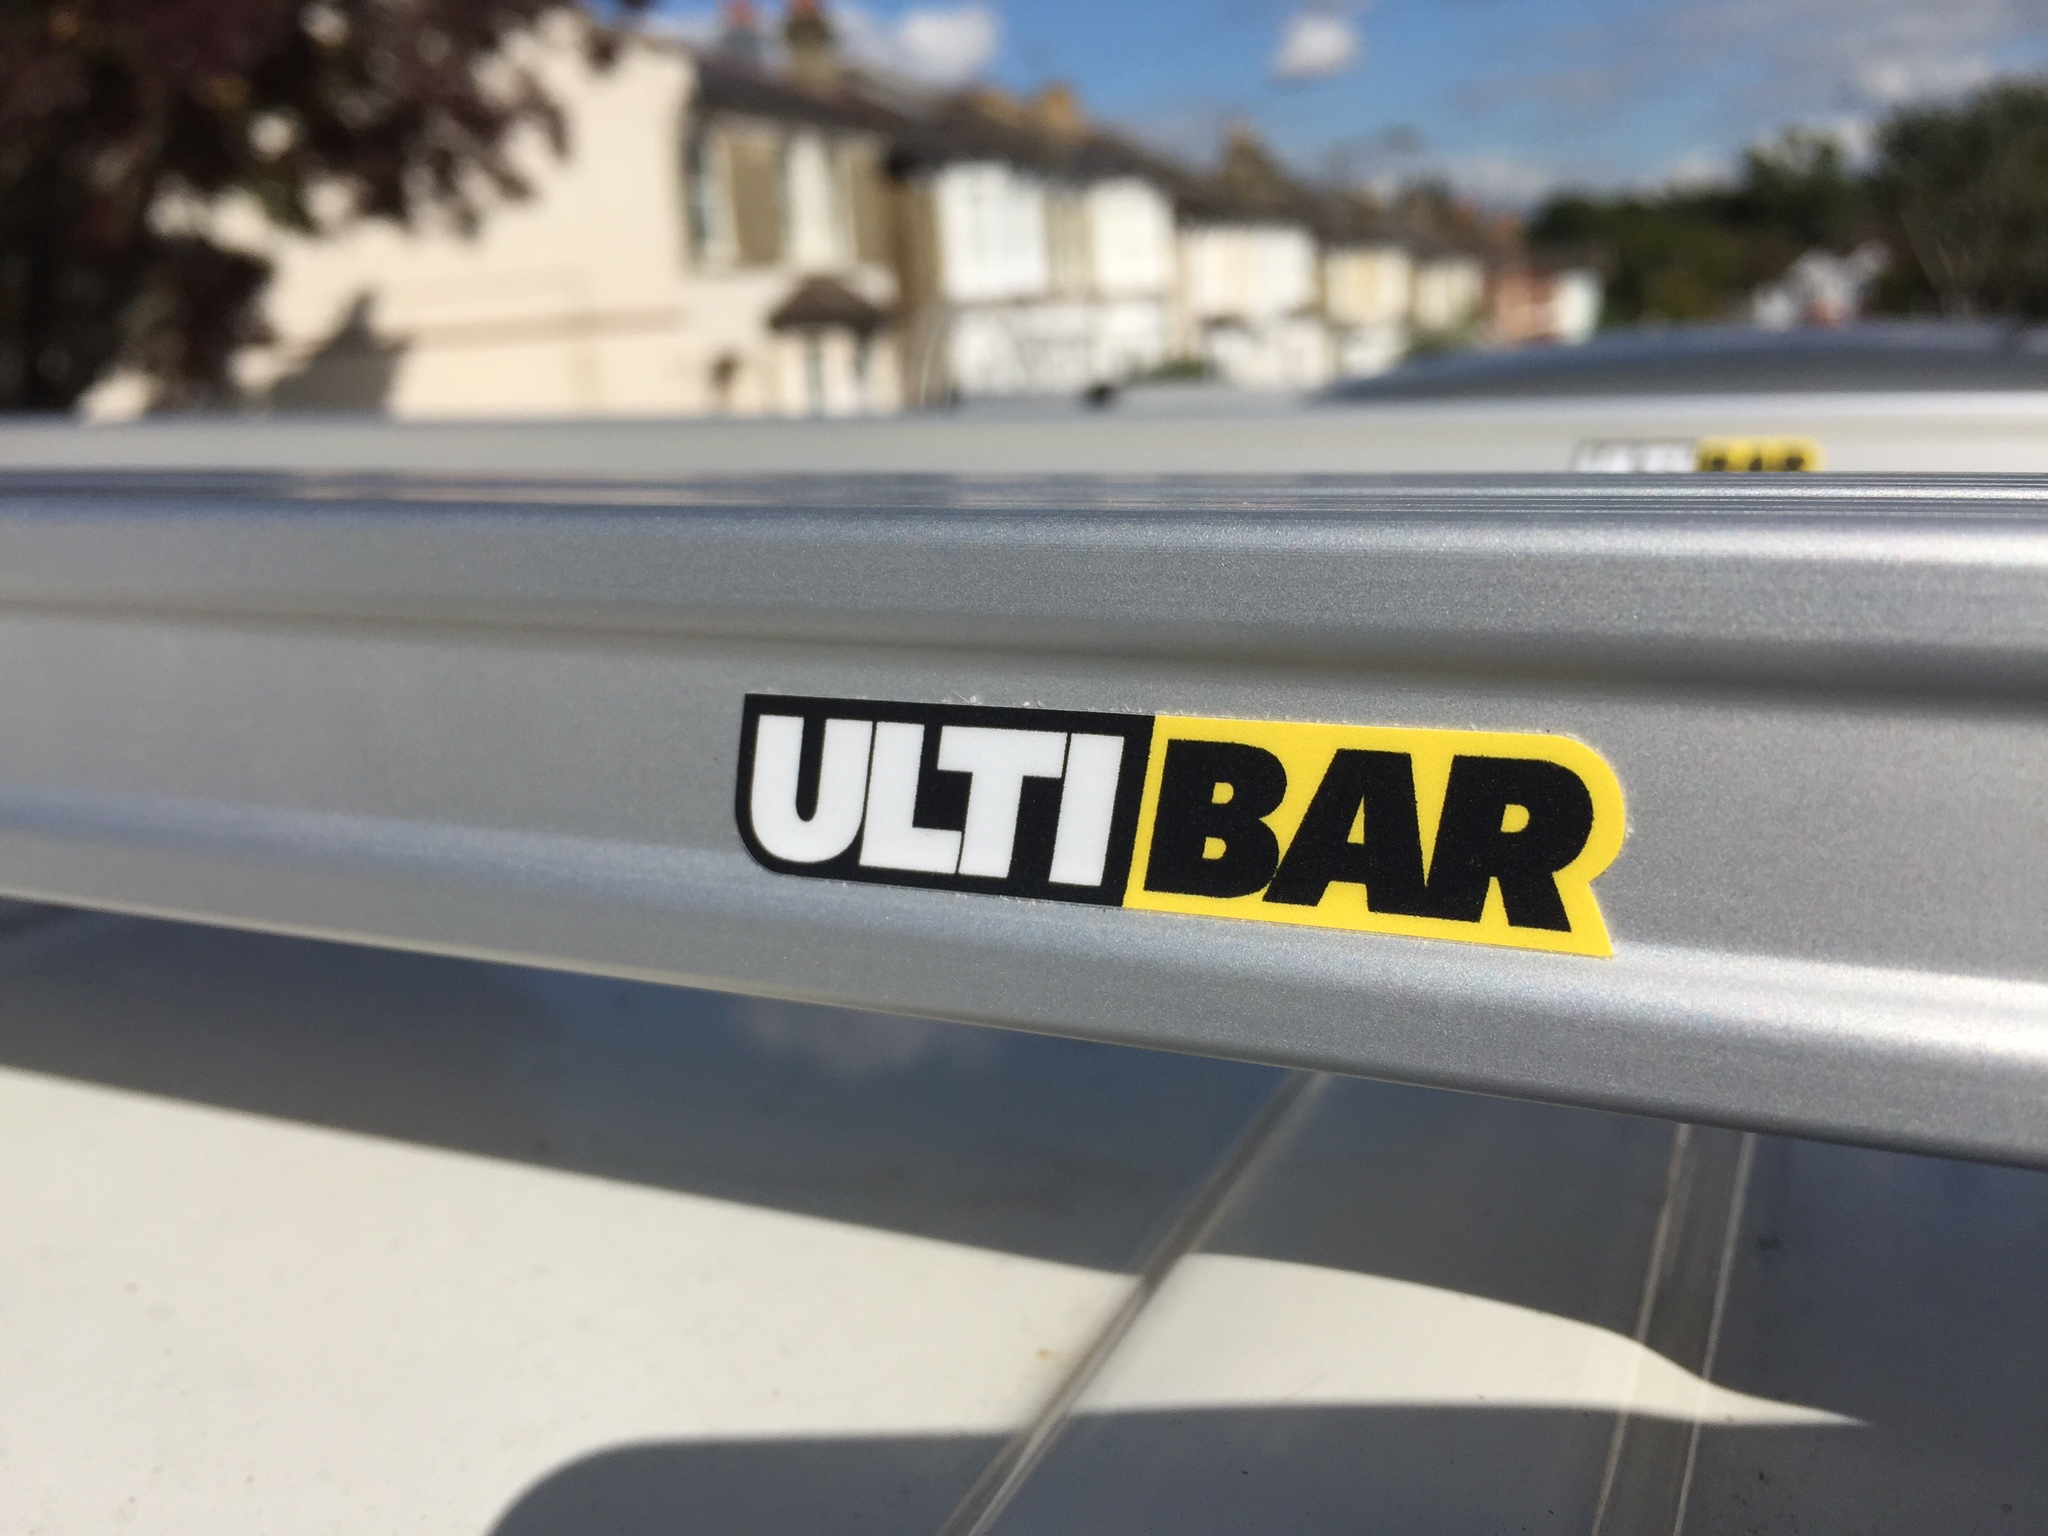 ULTI bar logo